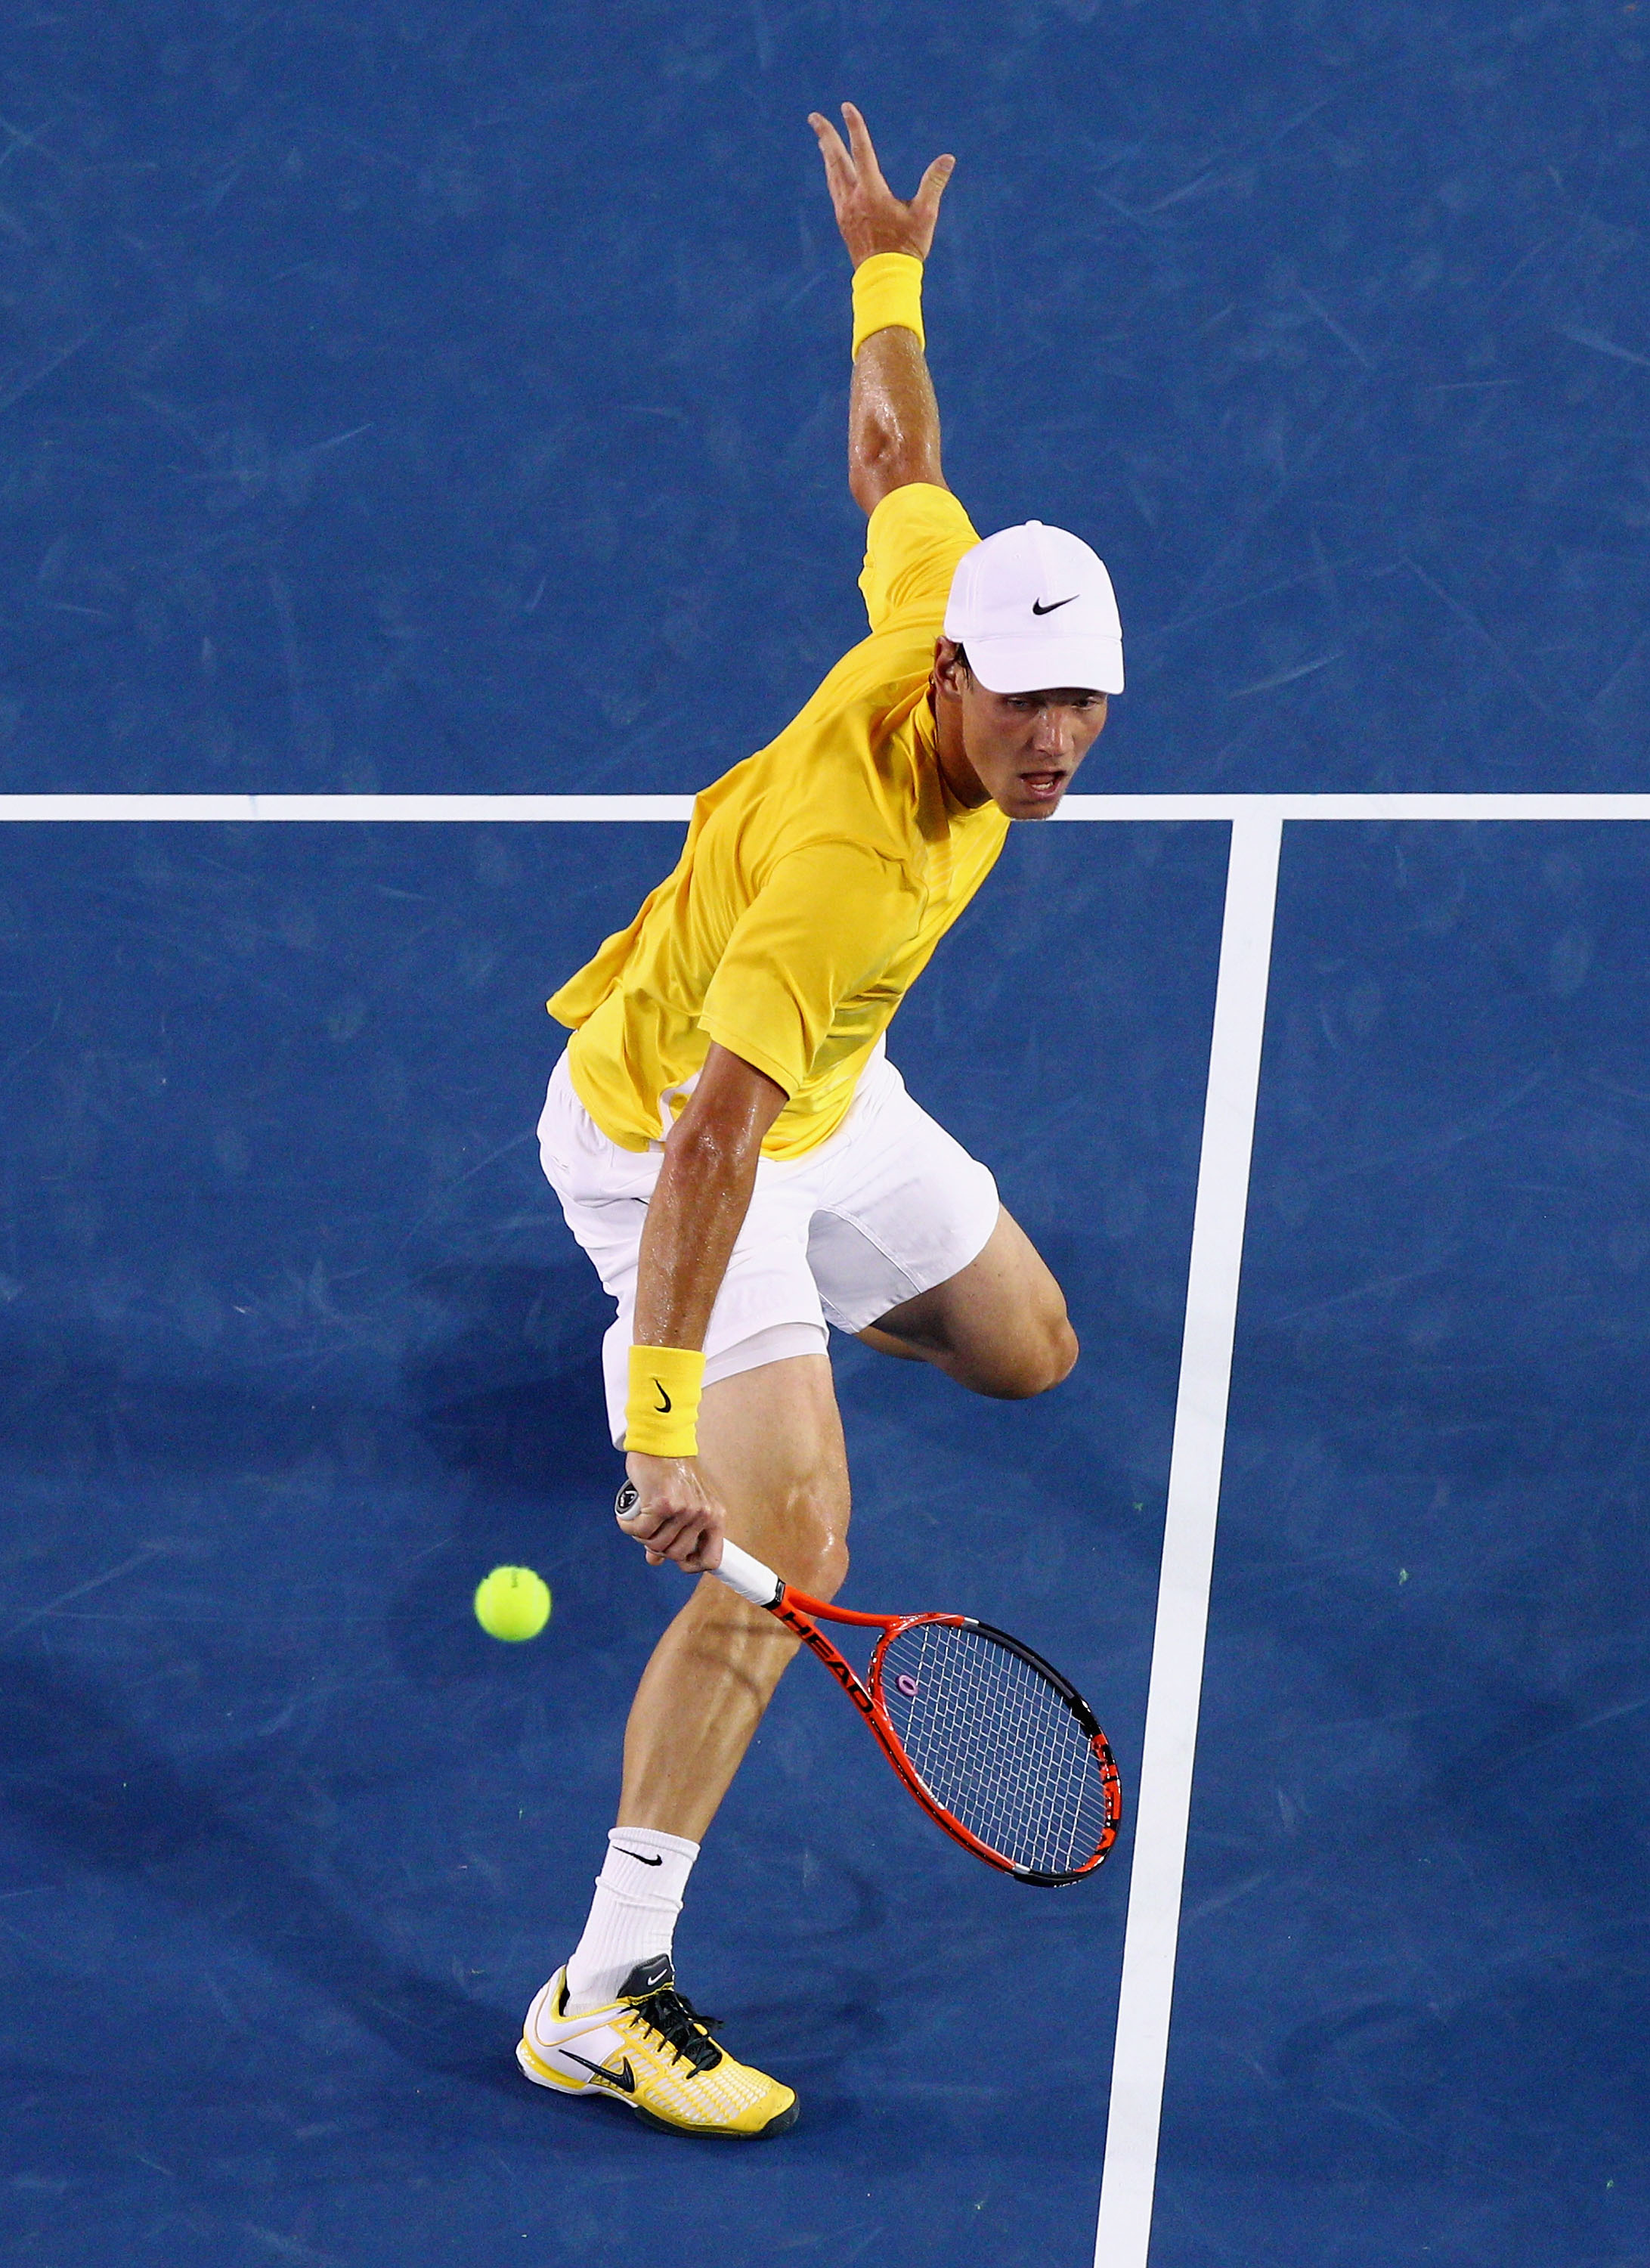 MELBOURNE, AUSTRALIA - JANUARY 25:  Tomas Berdych of the Czech Republic plays a backhand in his quarterfinal match against Novak Djokovic of Serbia during day nine of the 2011 Australian Open at Melbourne Park on January 25, 2011 in Melbourne, Australia.